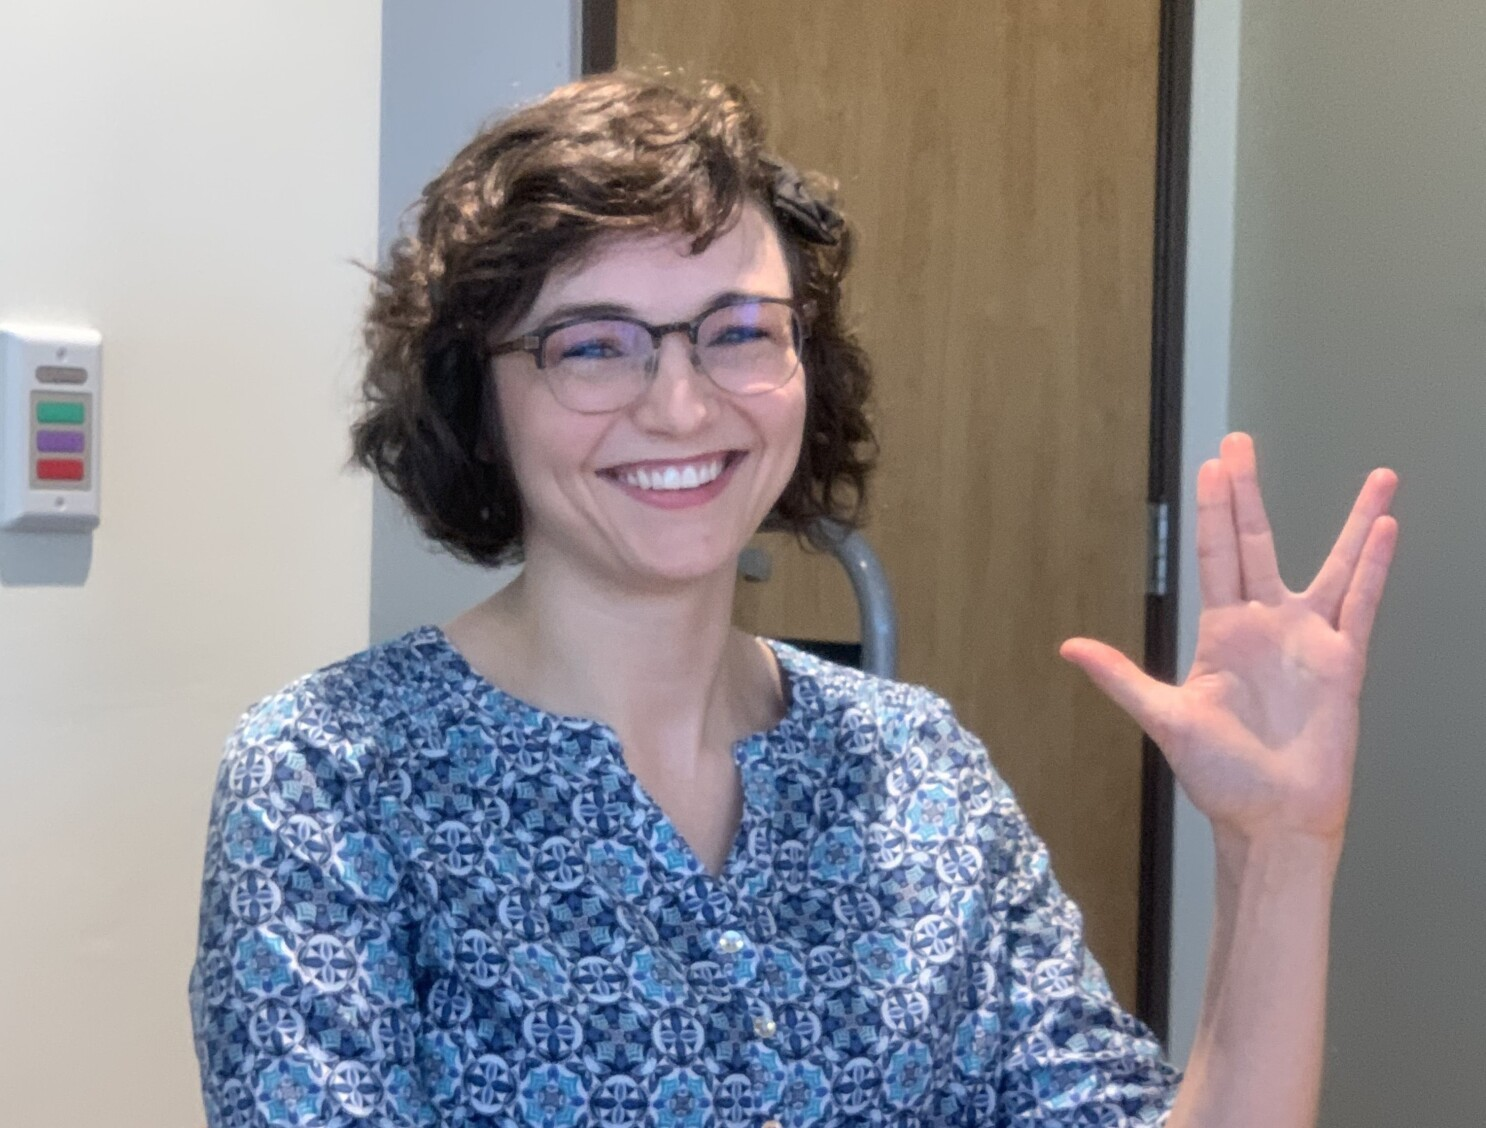 A young woman can now live long and prosper, after brain surgery cures her of seizures - Los Angeles Times